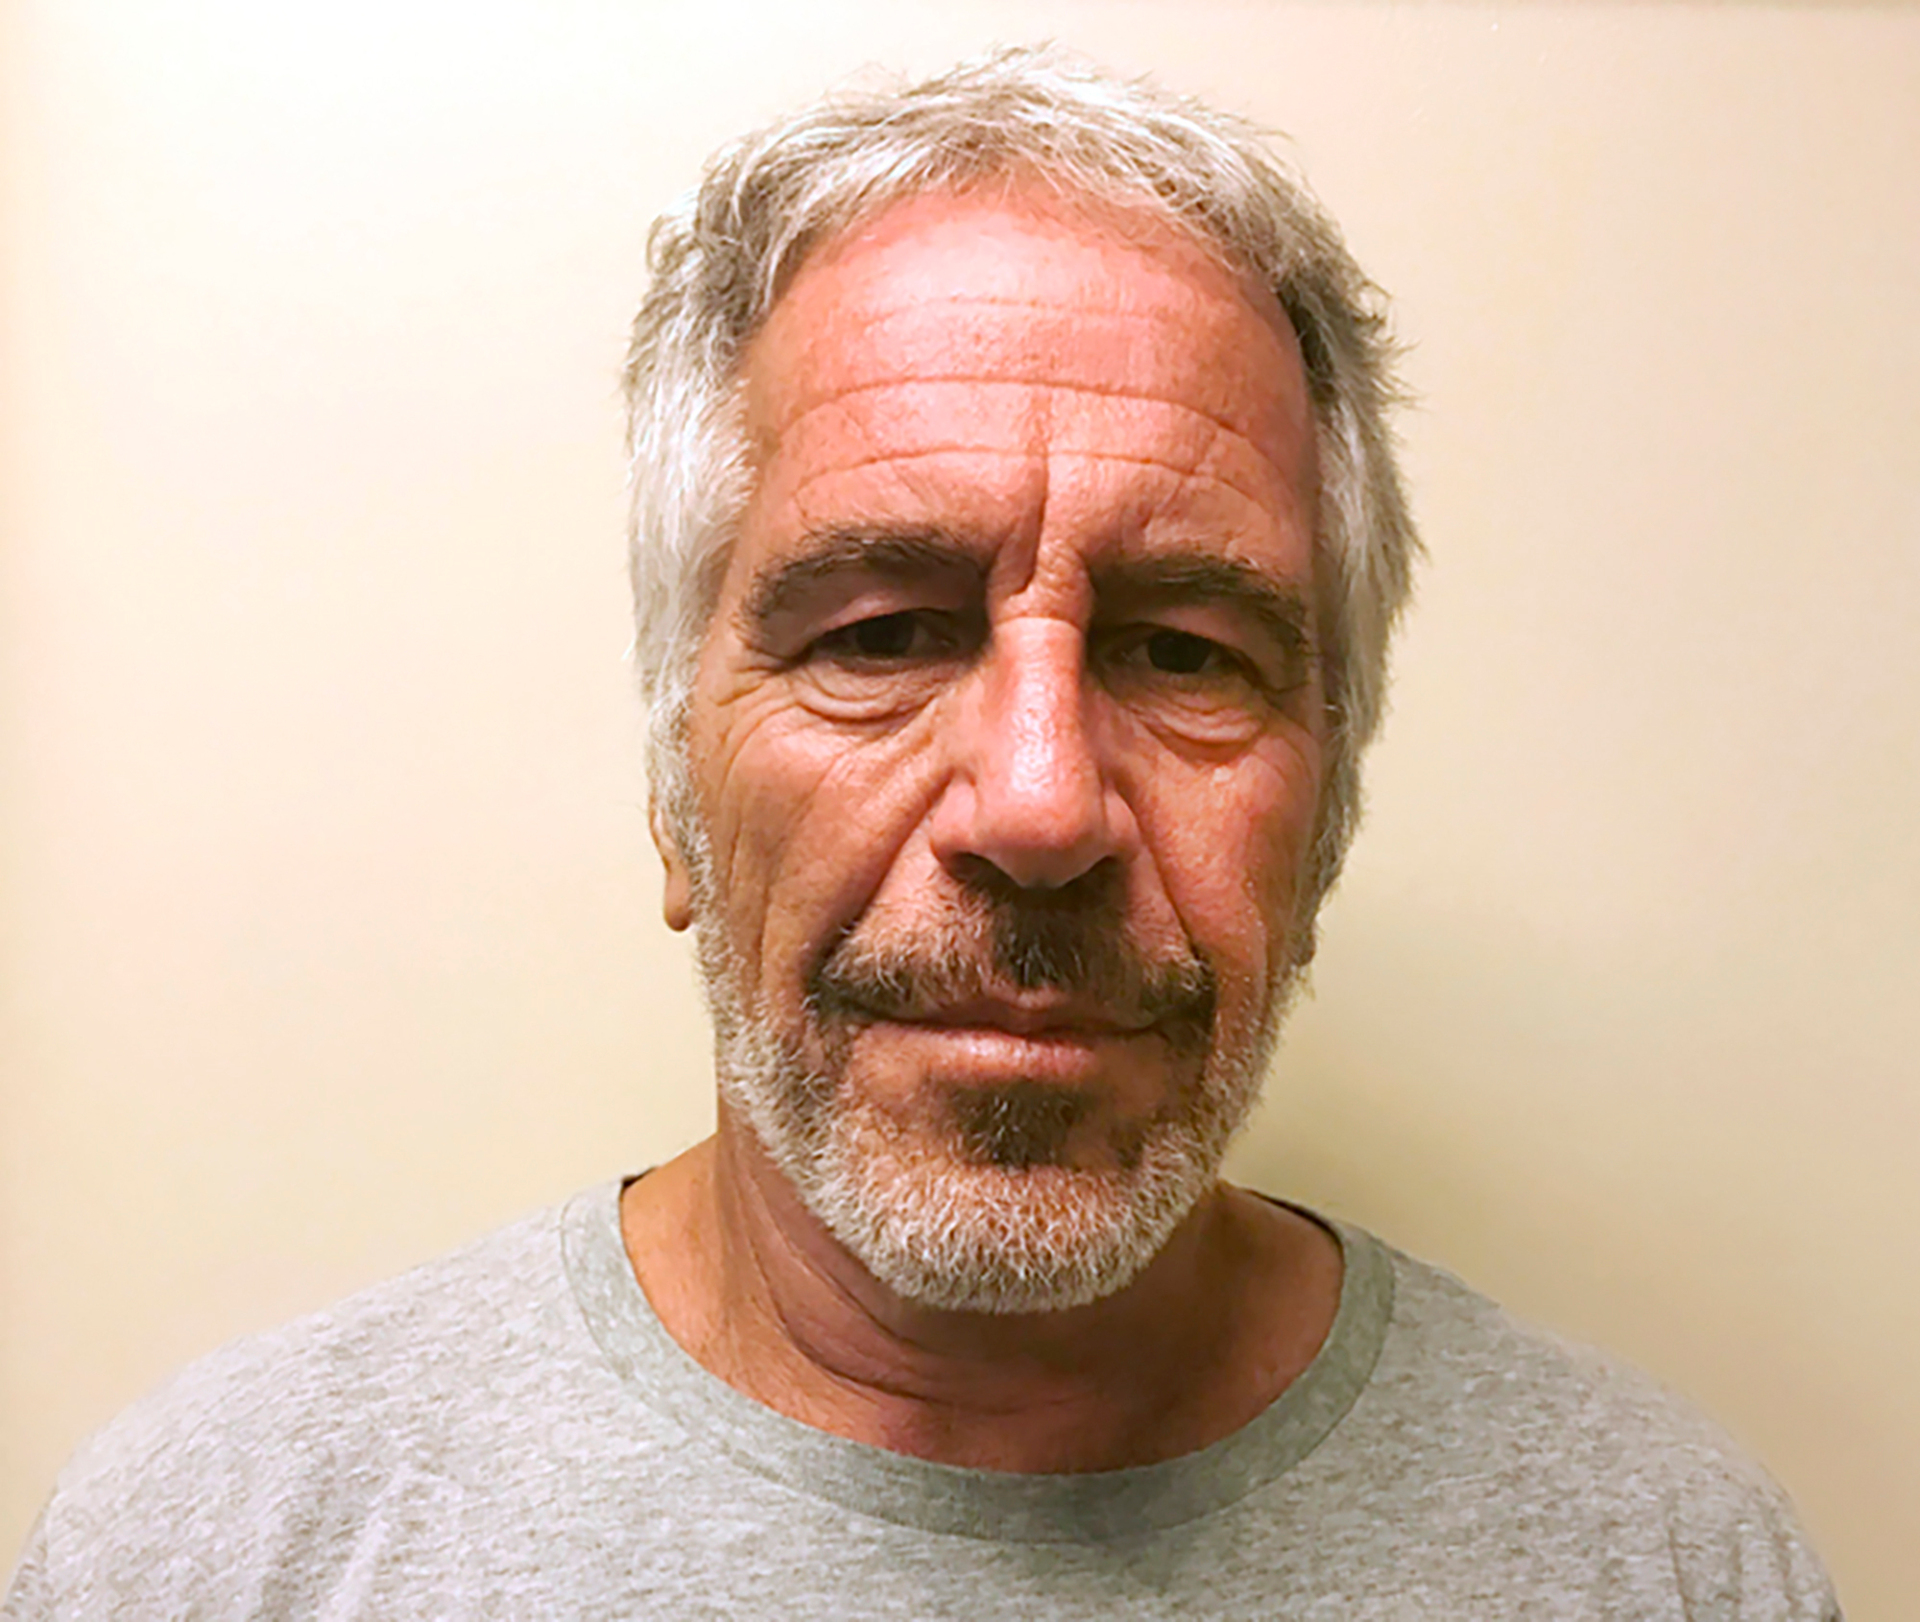 Reporter's chilling Jeffrey Epstein encounter